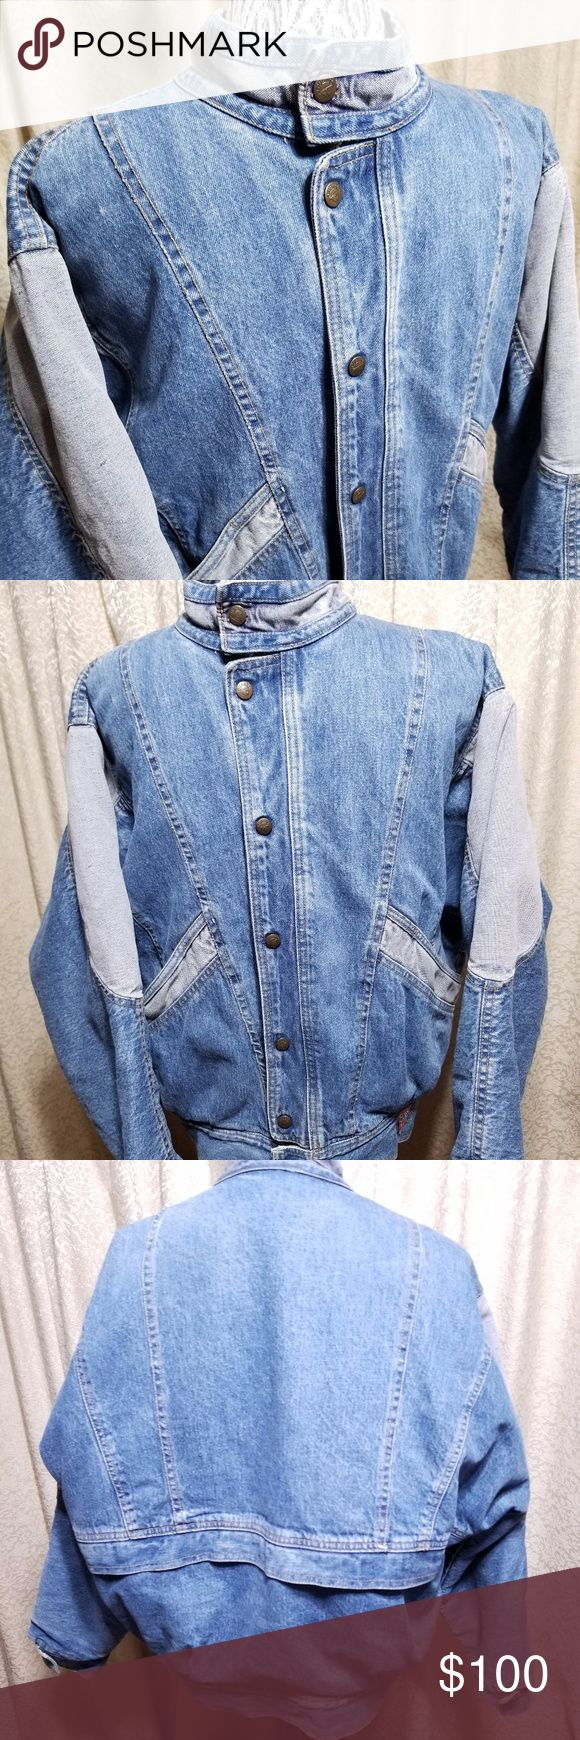 """80s Marciano for GUESS Mens Denim Bomber Jacket Vintage Georges Marciano for Guess 80's Men's Jean Jacket - EUC, no flaws.  This jacket is similar to the popular """"McFly"""" style denim jacket by GUESS with slight differences.  Features two-tone blue denim, puffed bomber style jacket, snap closures, and vintage GUESS Logo.  This style is near impossible to find anywhere so grab it while you can!  Marked Men's M   -----  Could definitely be worn by a woman Guess by Marciano Jackets & Coats Bomber…"""